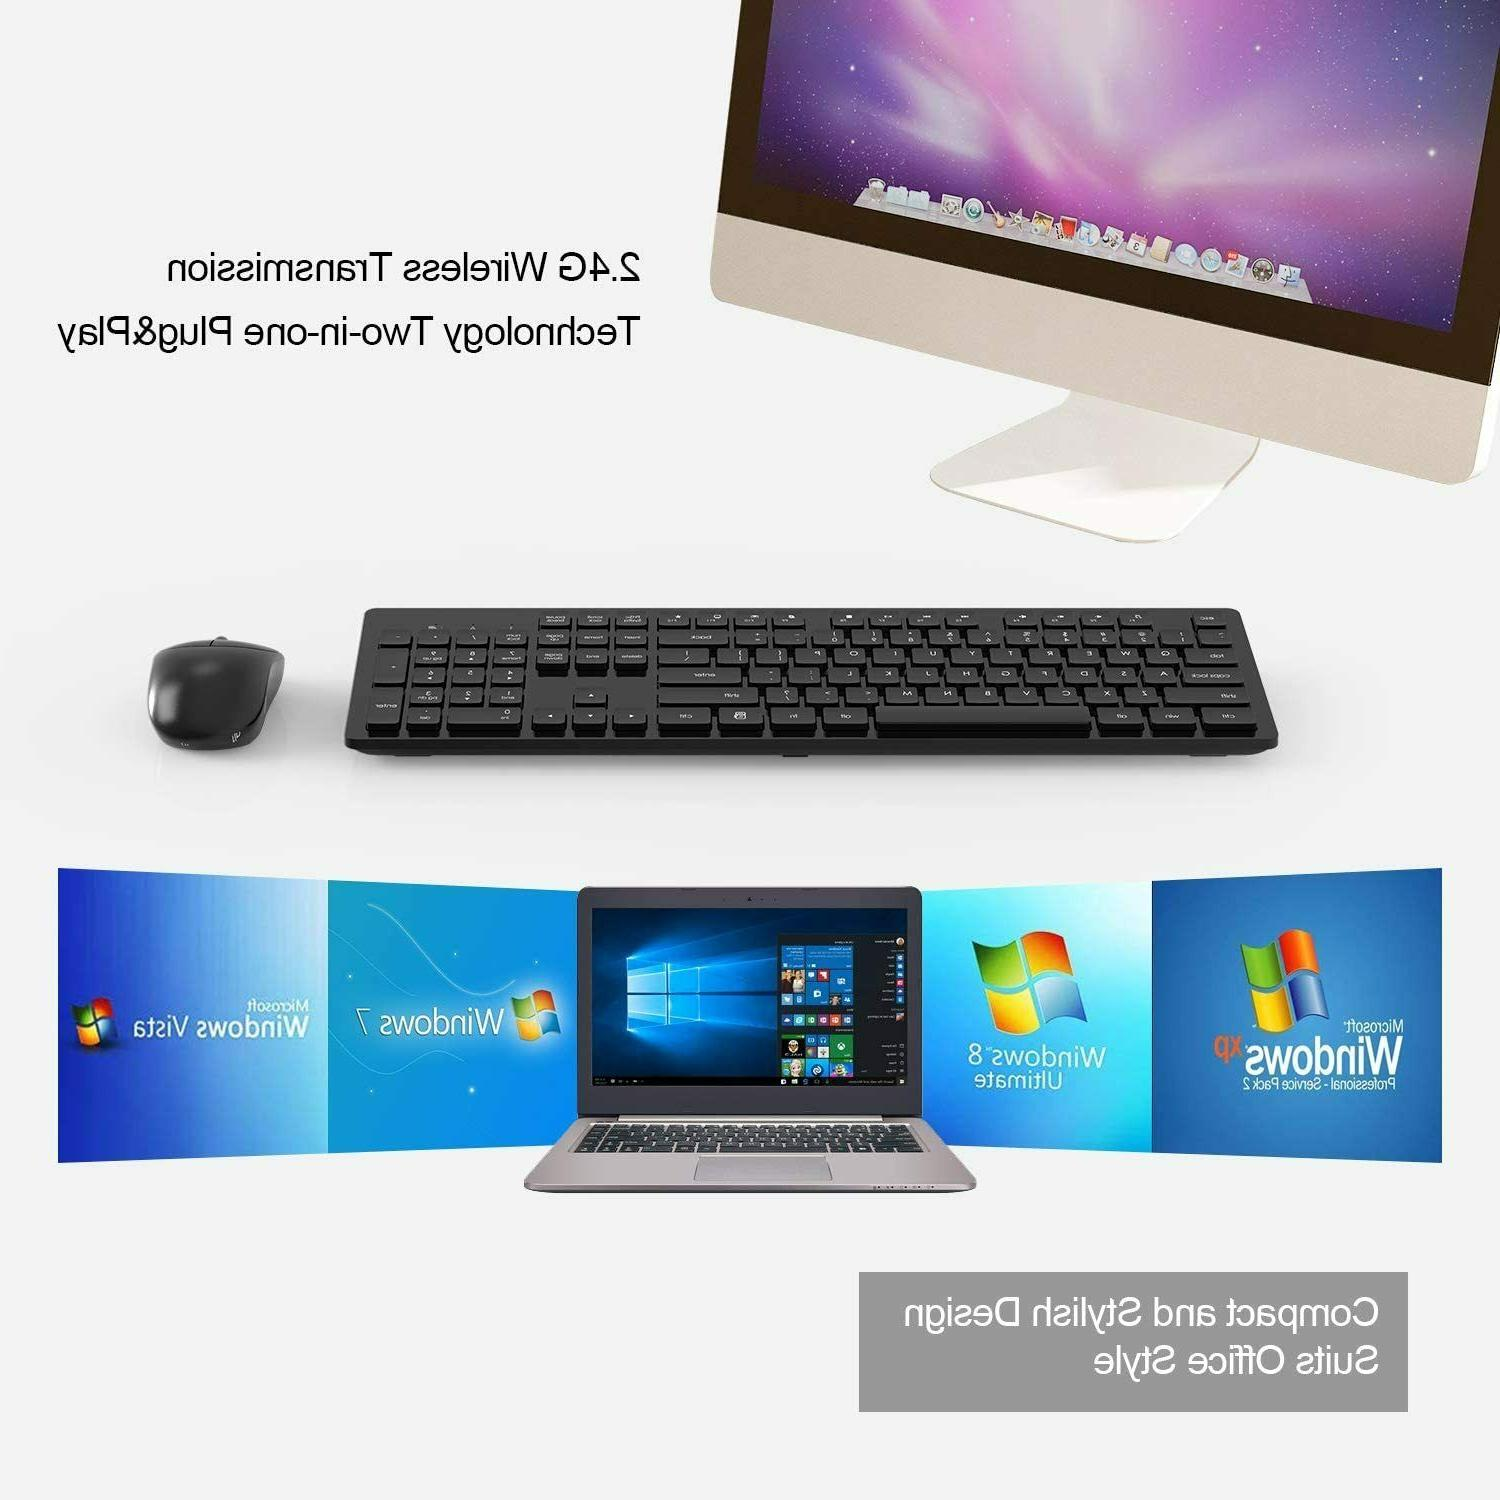 Wireless Keyboard and Mouse, Full-Size Wireless Mouse and Keyboard